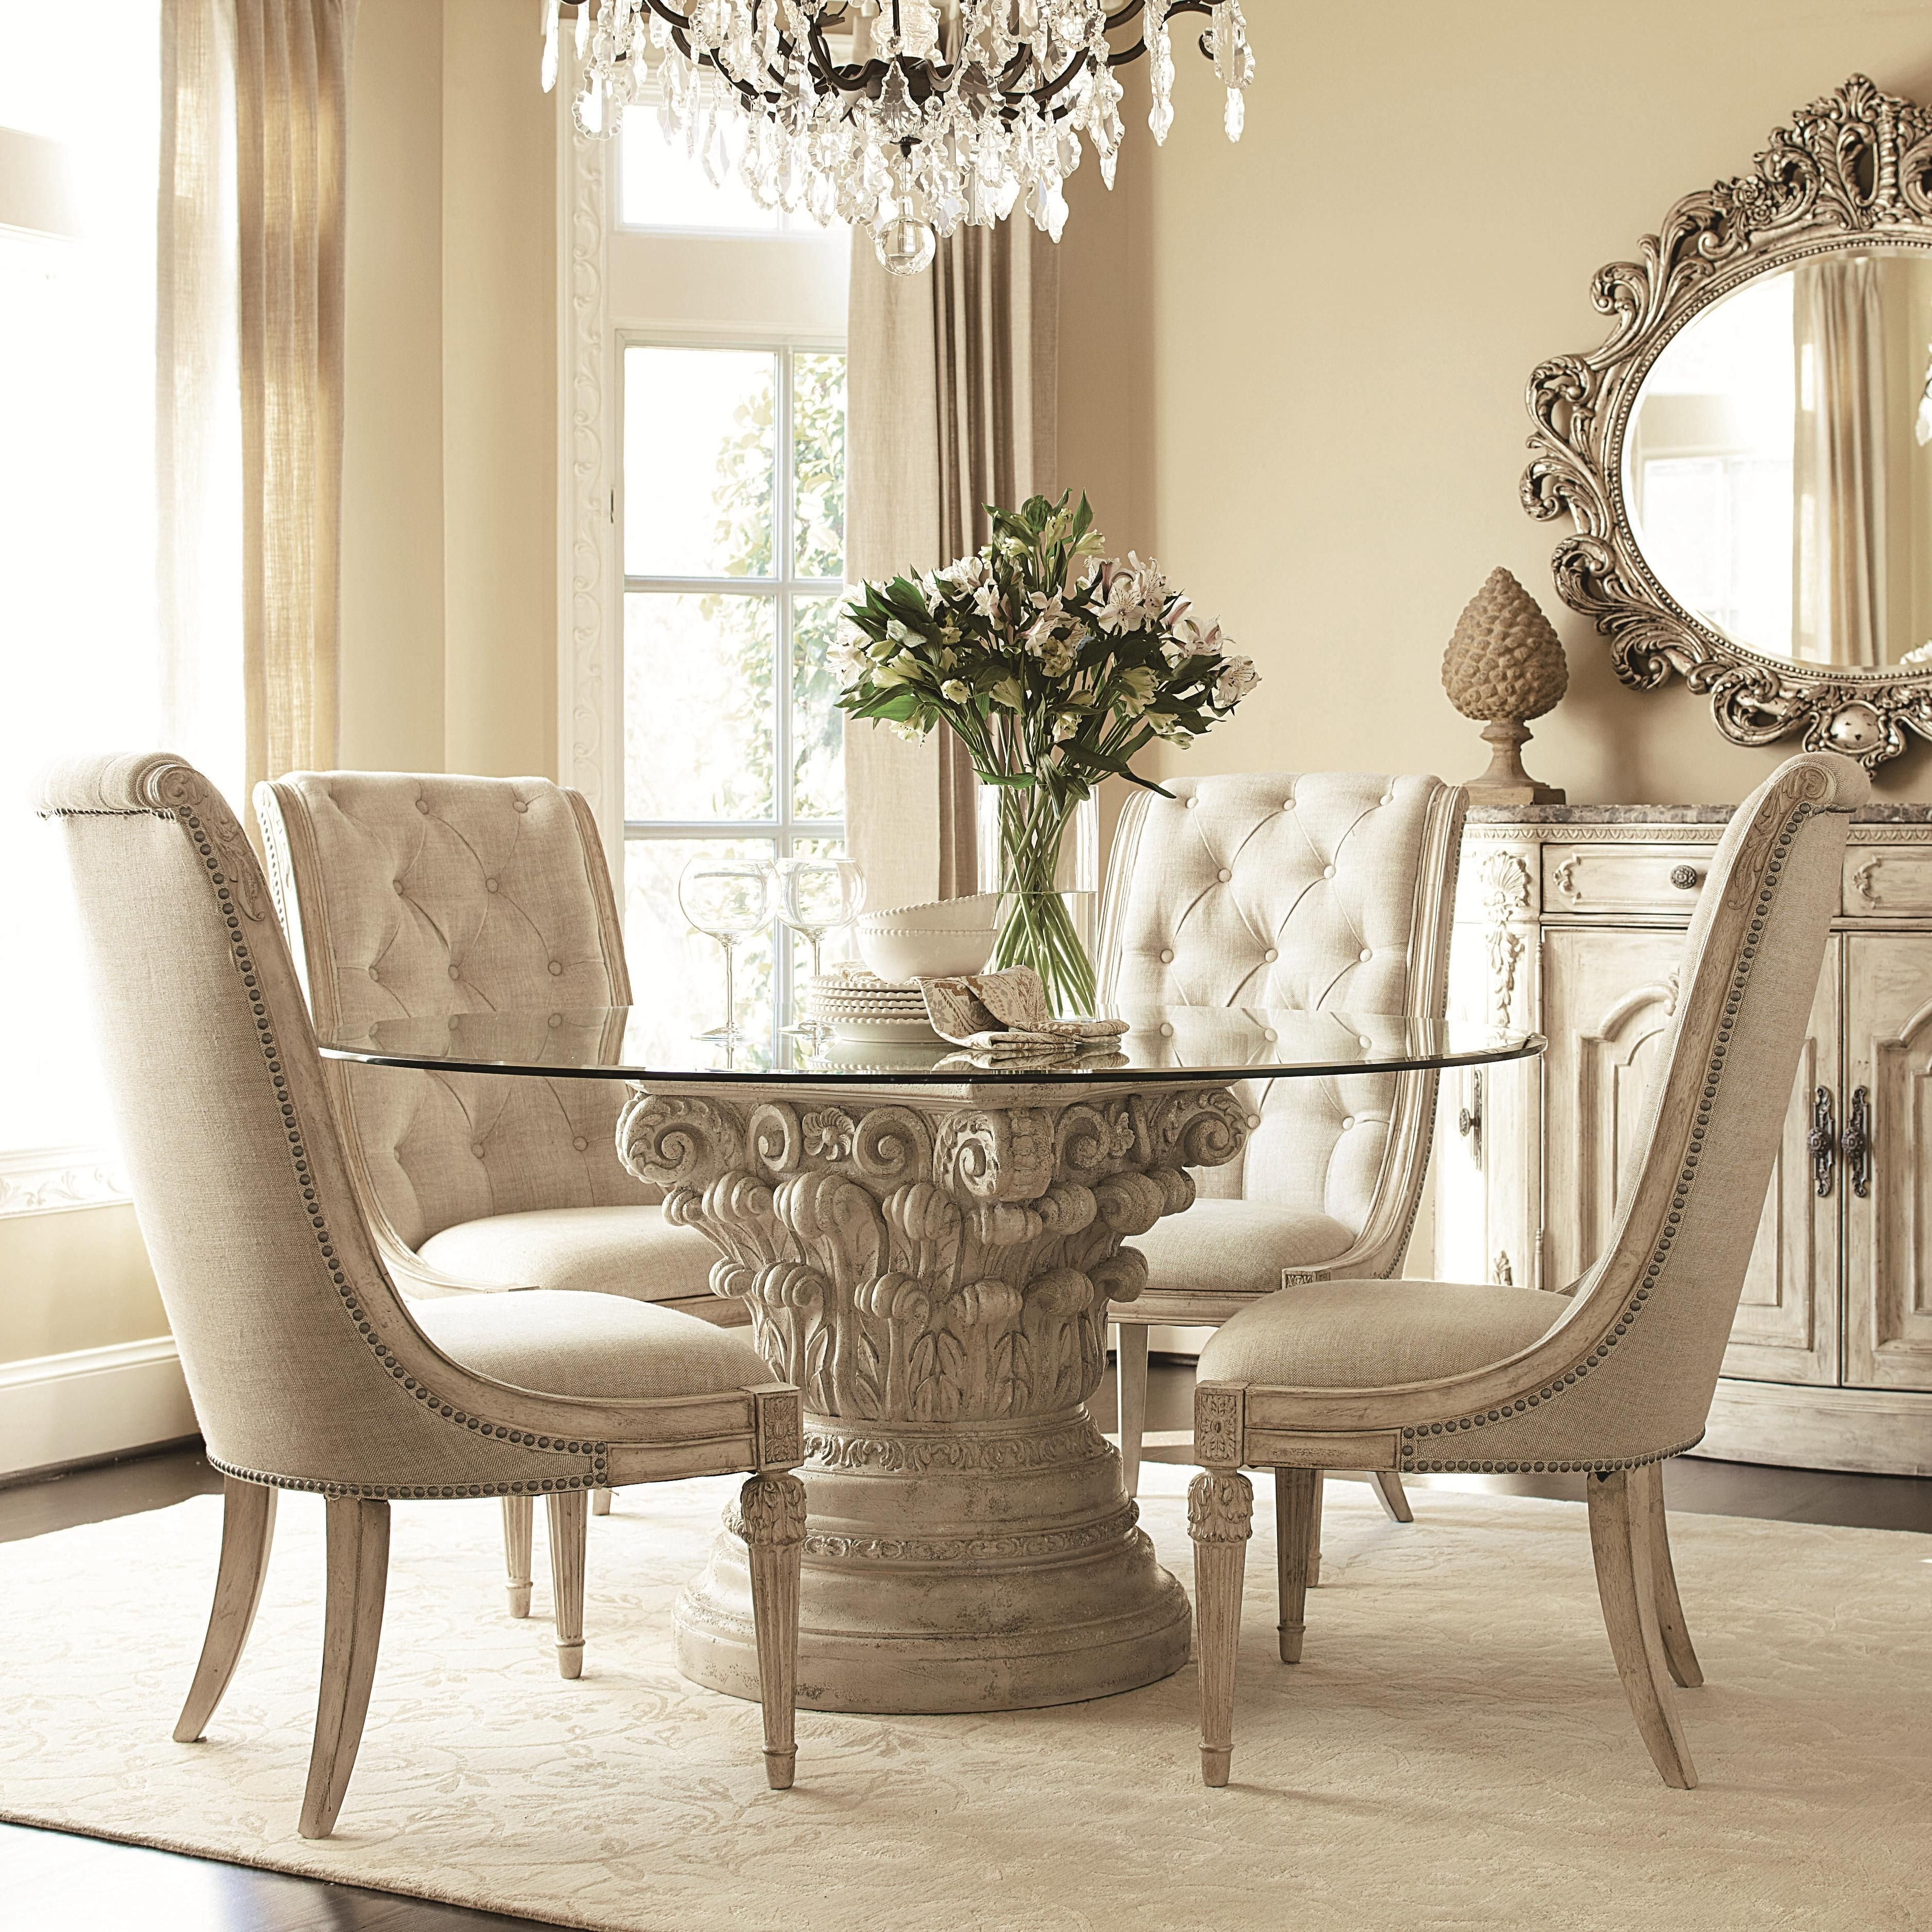 Jessica Mcclintock Home - The Boutique Collection 5 Piece Round in Most Up-to-Date Laurent 5 Piece Round Dining Sets With Wood Chairs